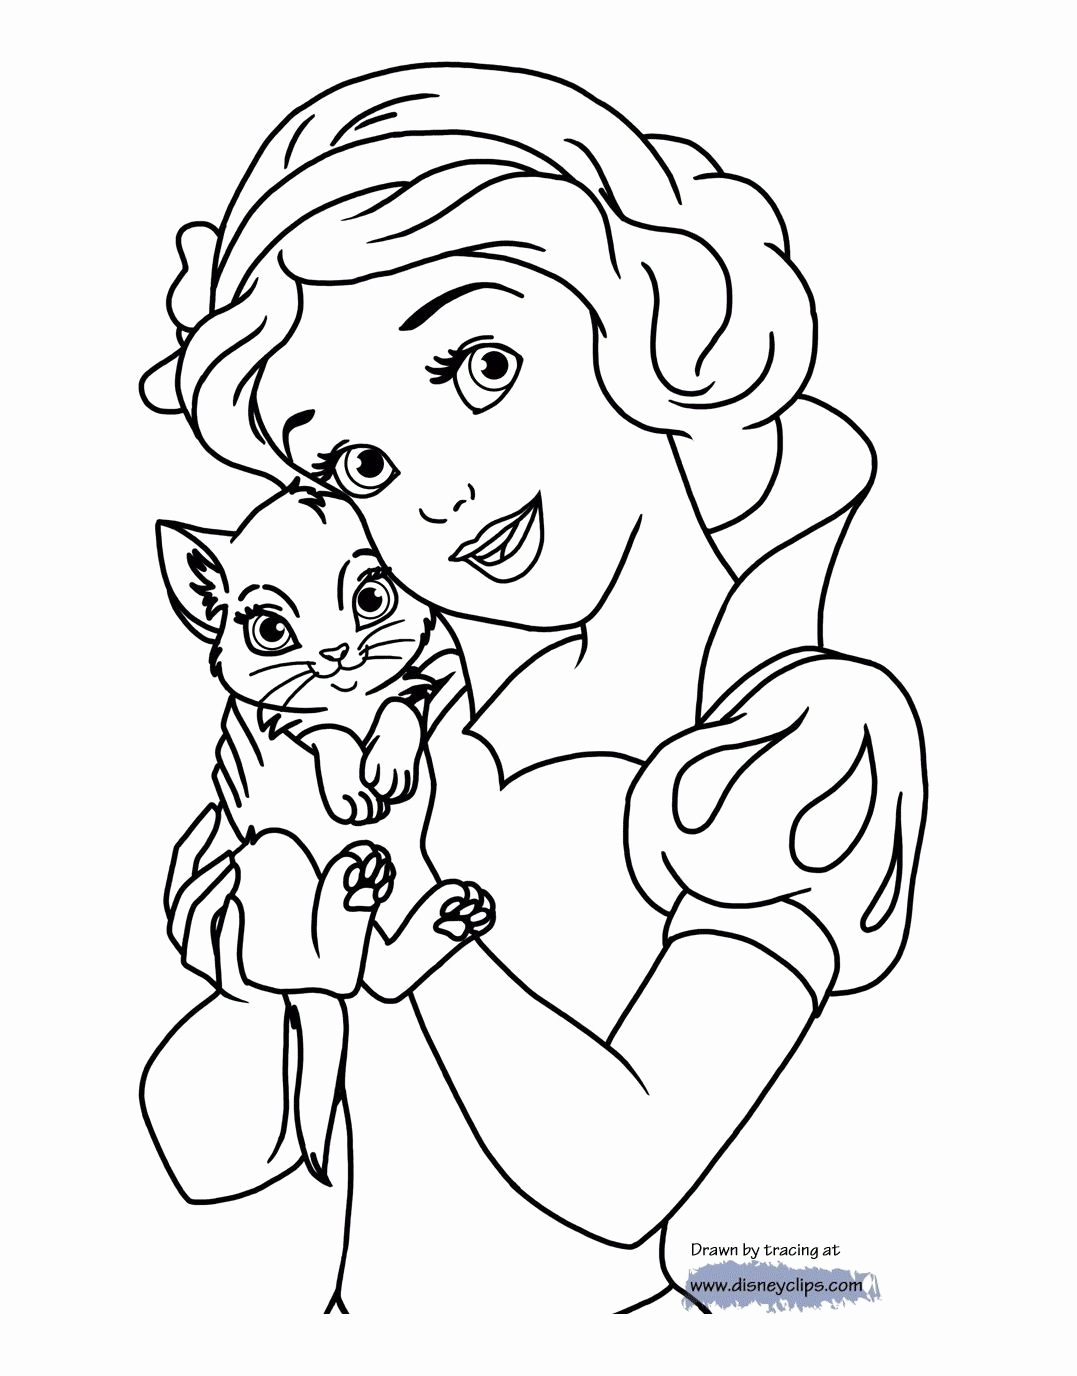 1077x1376 Snow White And The Seven Dwarfs Coloring Pages Finest Disney Snow